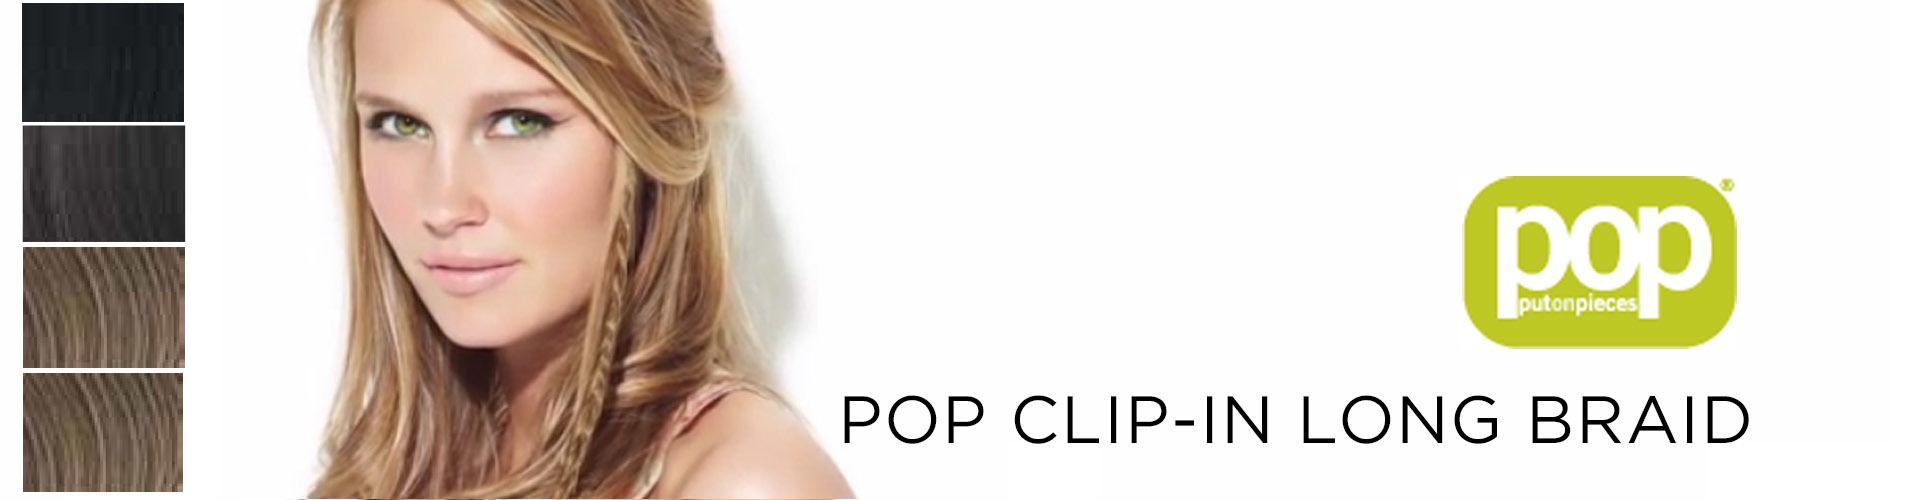 POP Clip-In Long Braid (© Great Lengths)